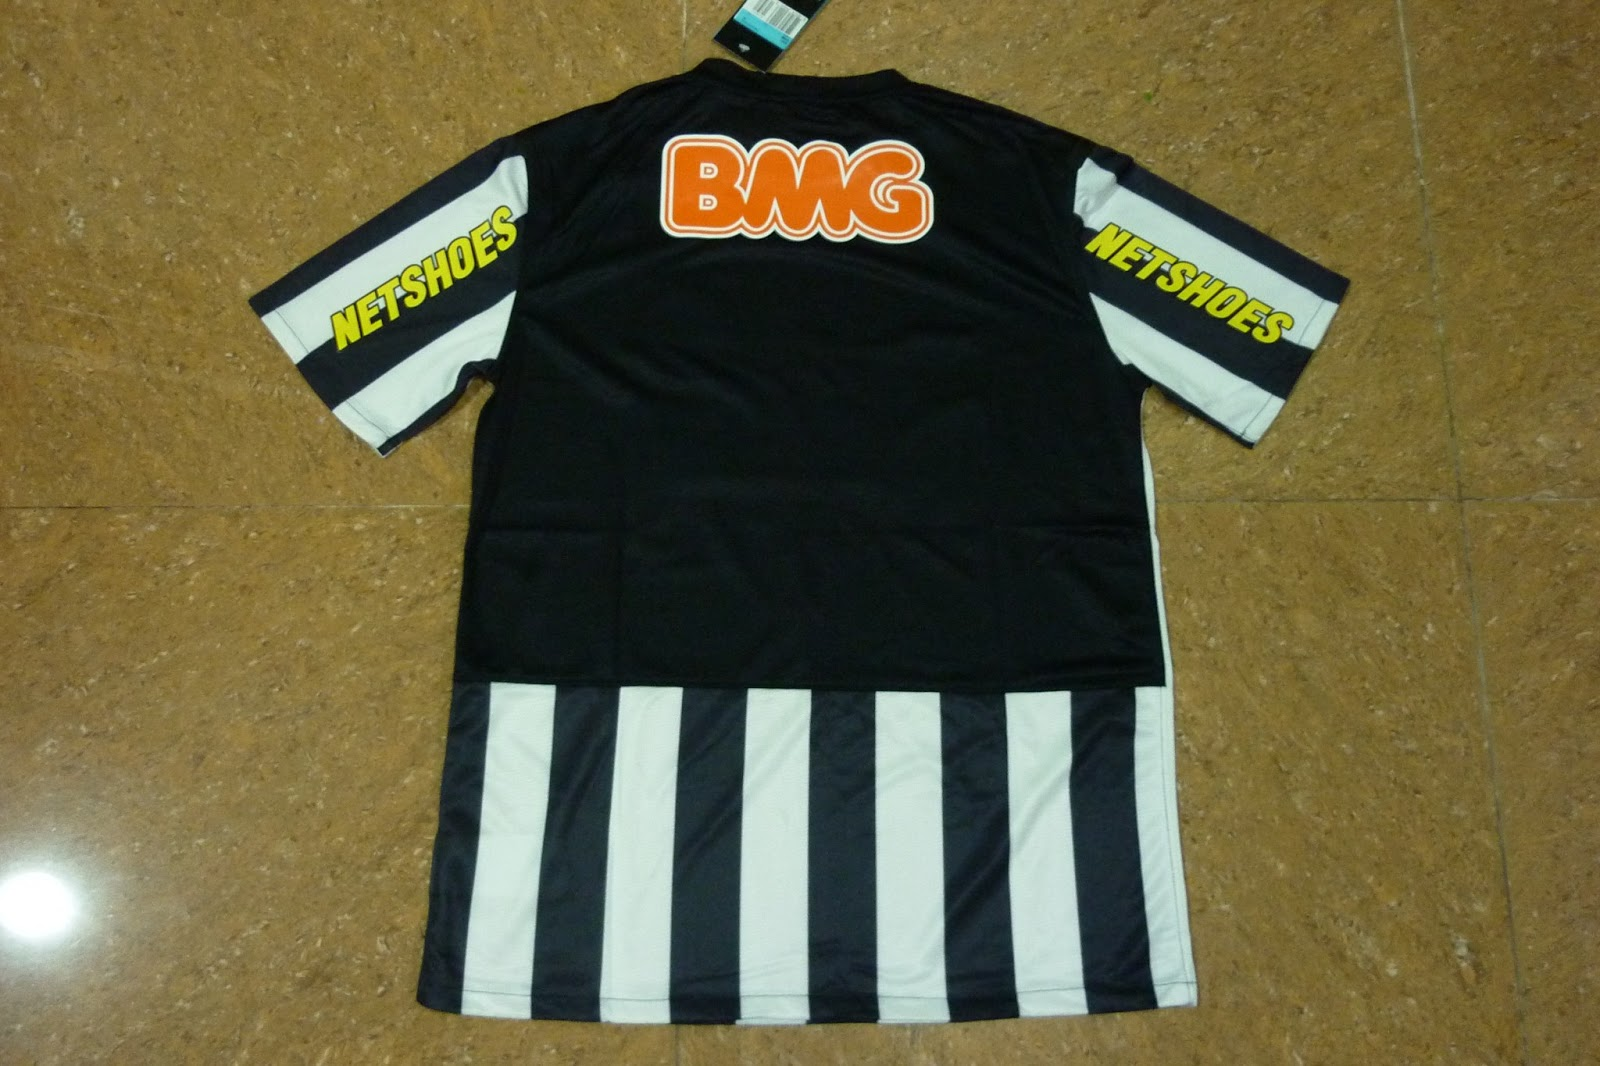 d40d5c2b566 SANTOS FC PLAYER ISSUE AWAY 2012 13 JERSEY